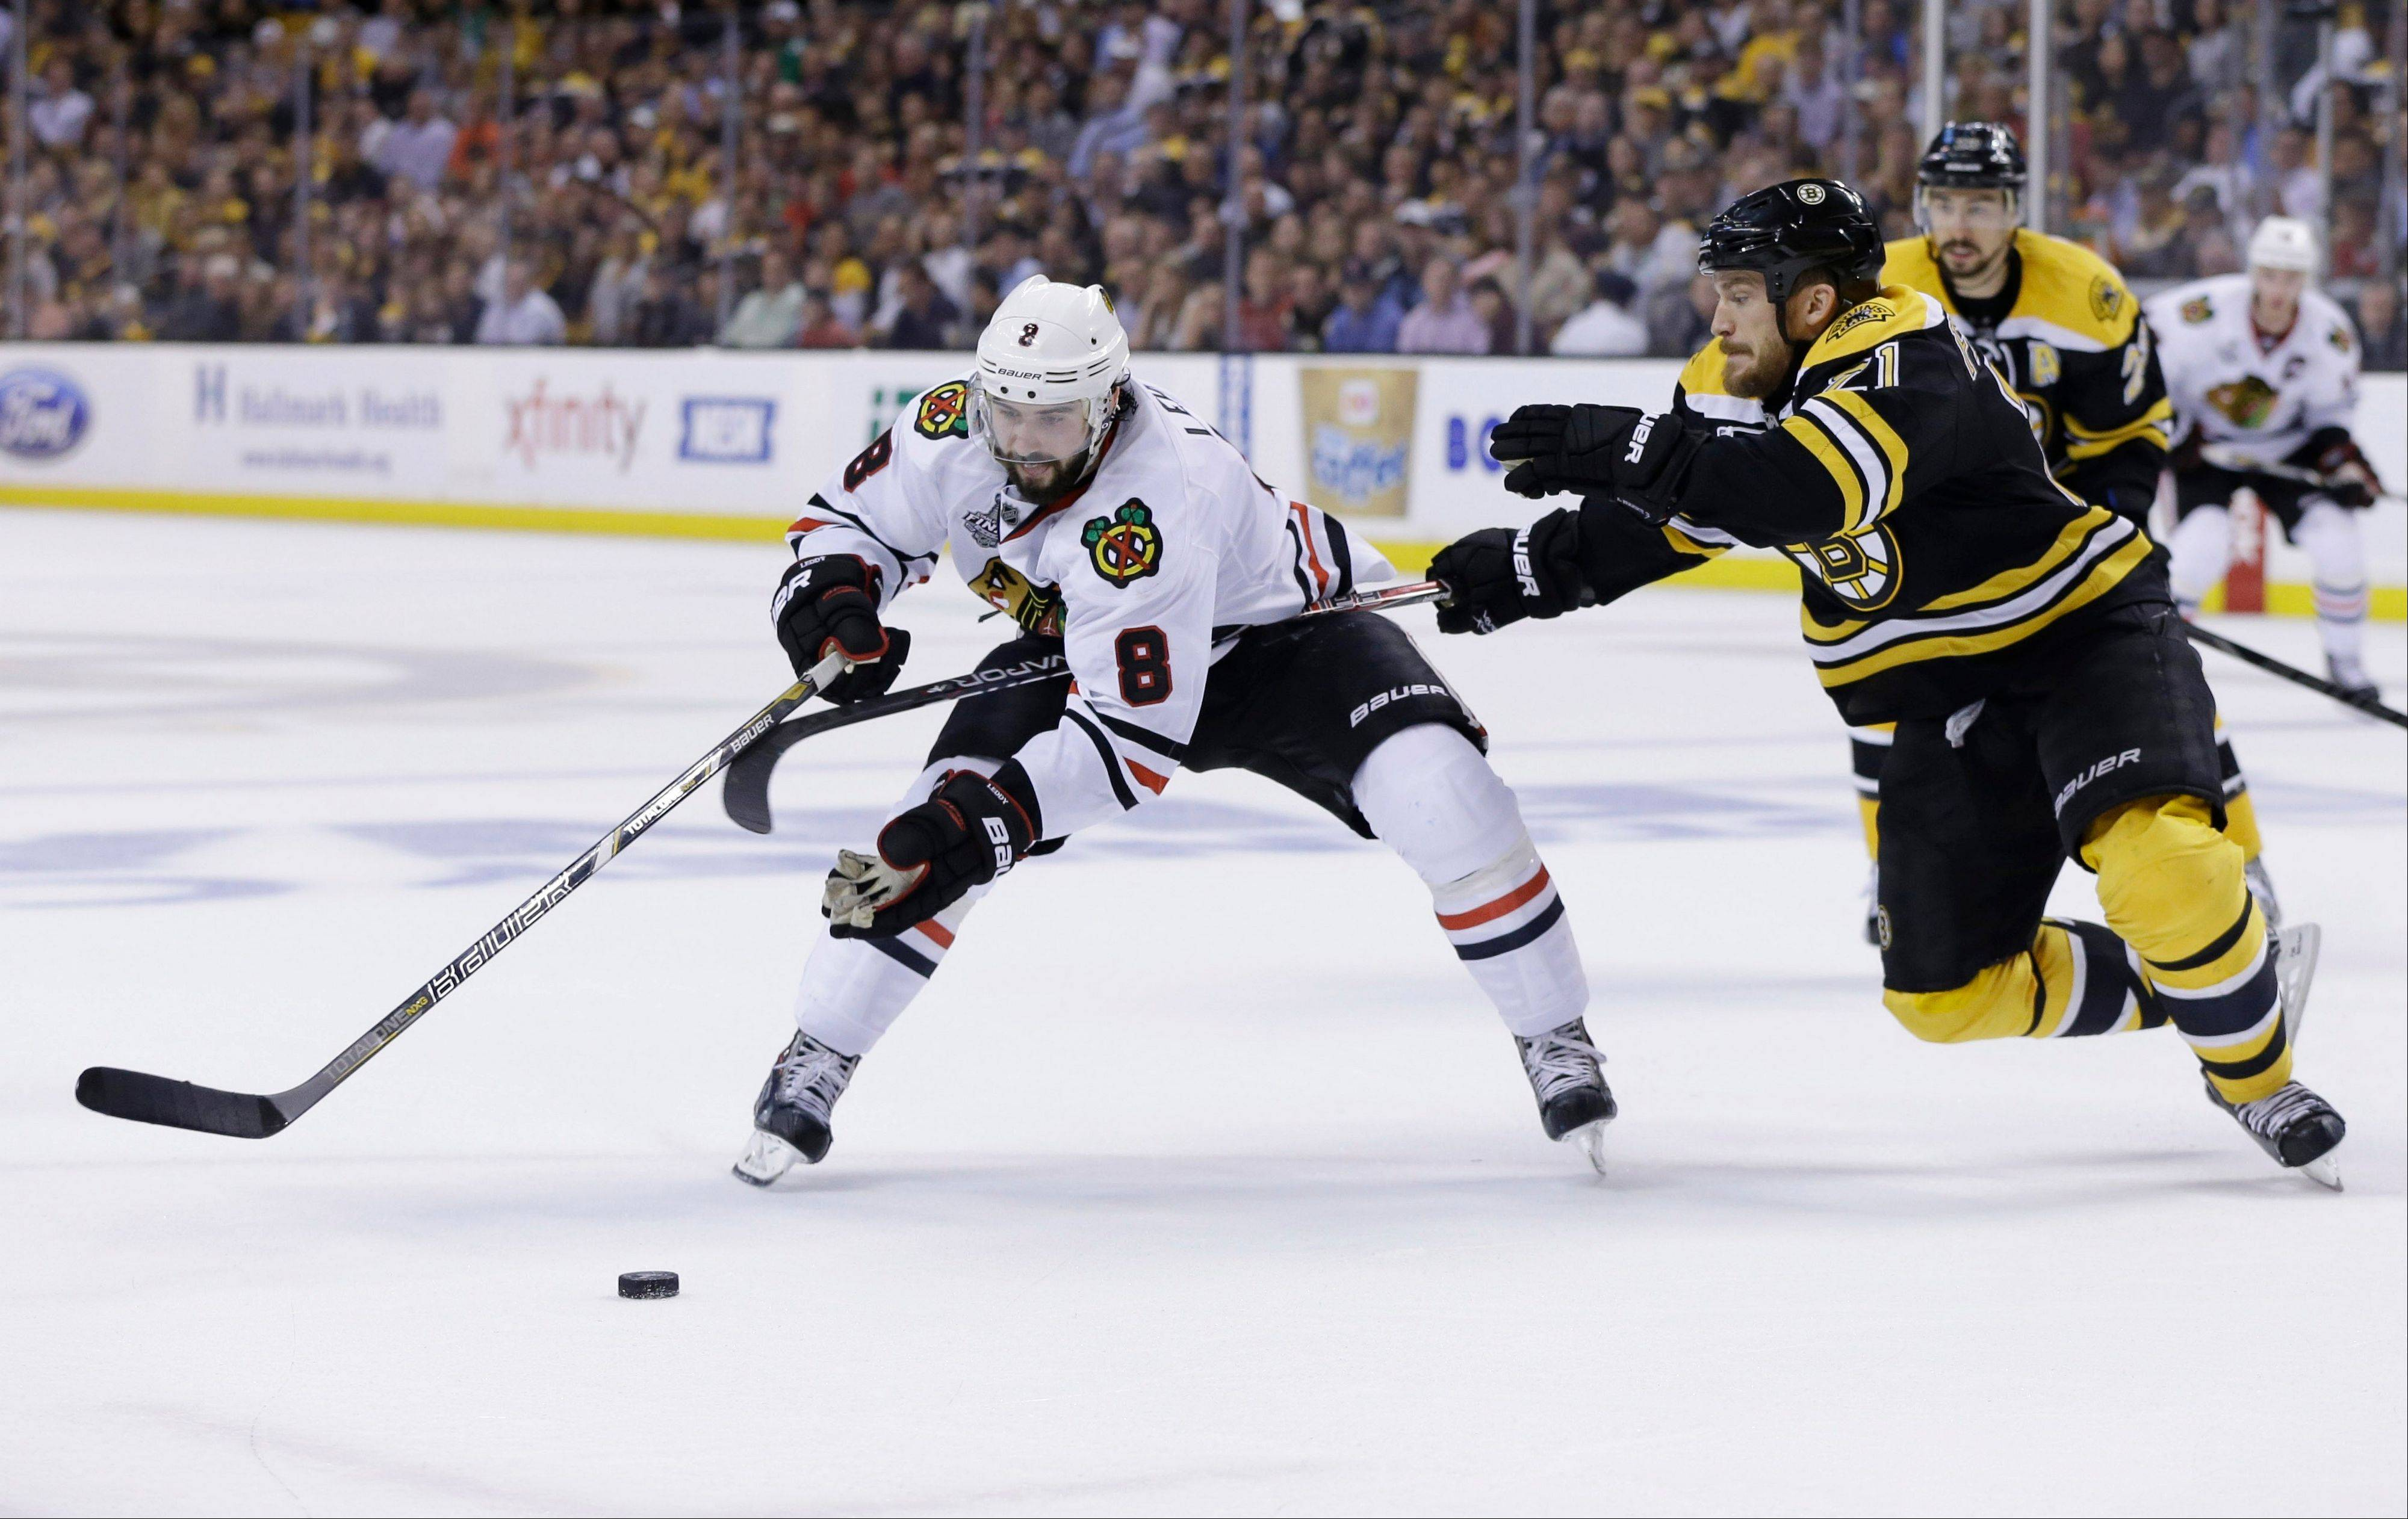 Chicago Blackhawks defenseman Nick Leddy (8) saw a lot of action in Game 3 (above) of the Stanley Cup Final, but only played a few minutes in Game 4 against the Boston Bruins.